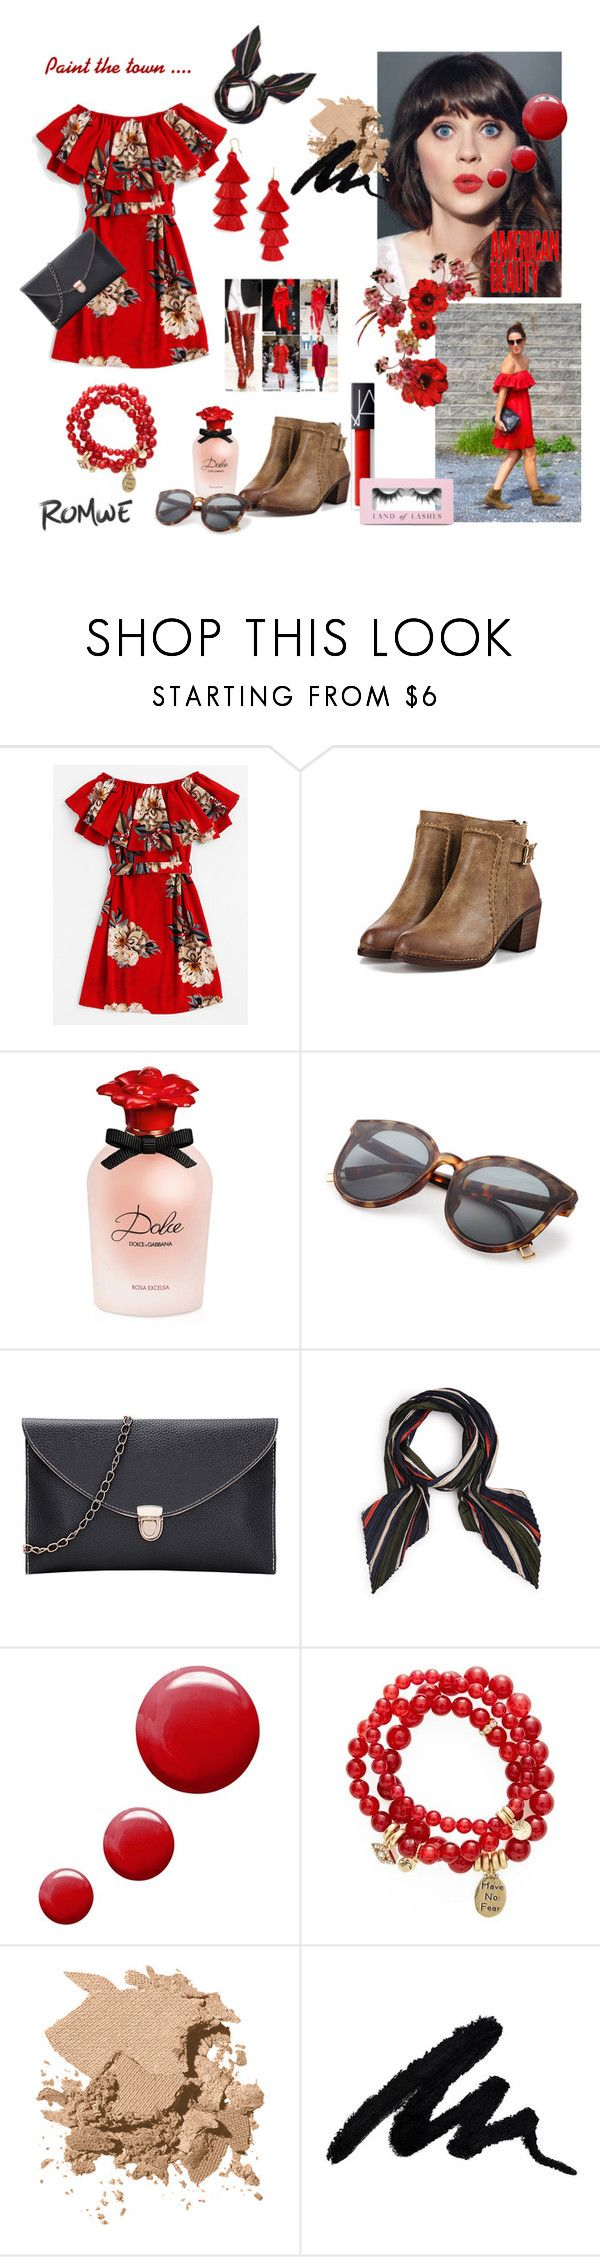 Dolce ROsa by paisleyvelvetandlace on Polyvore featuring Sequin, Bobbi Brown Cosmetics, Dolce&Gabbana, Boohoo and Topshop